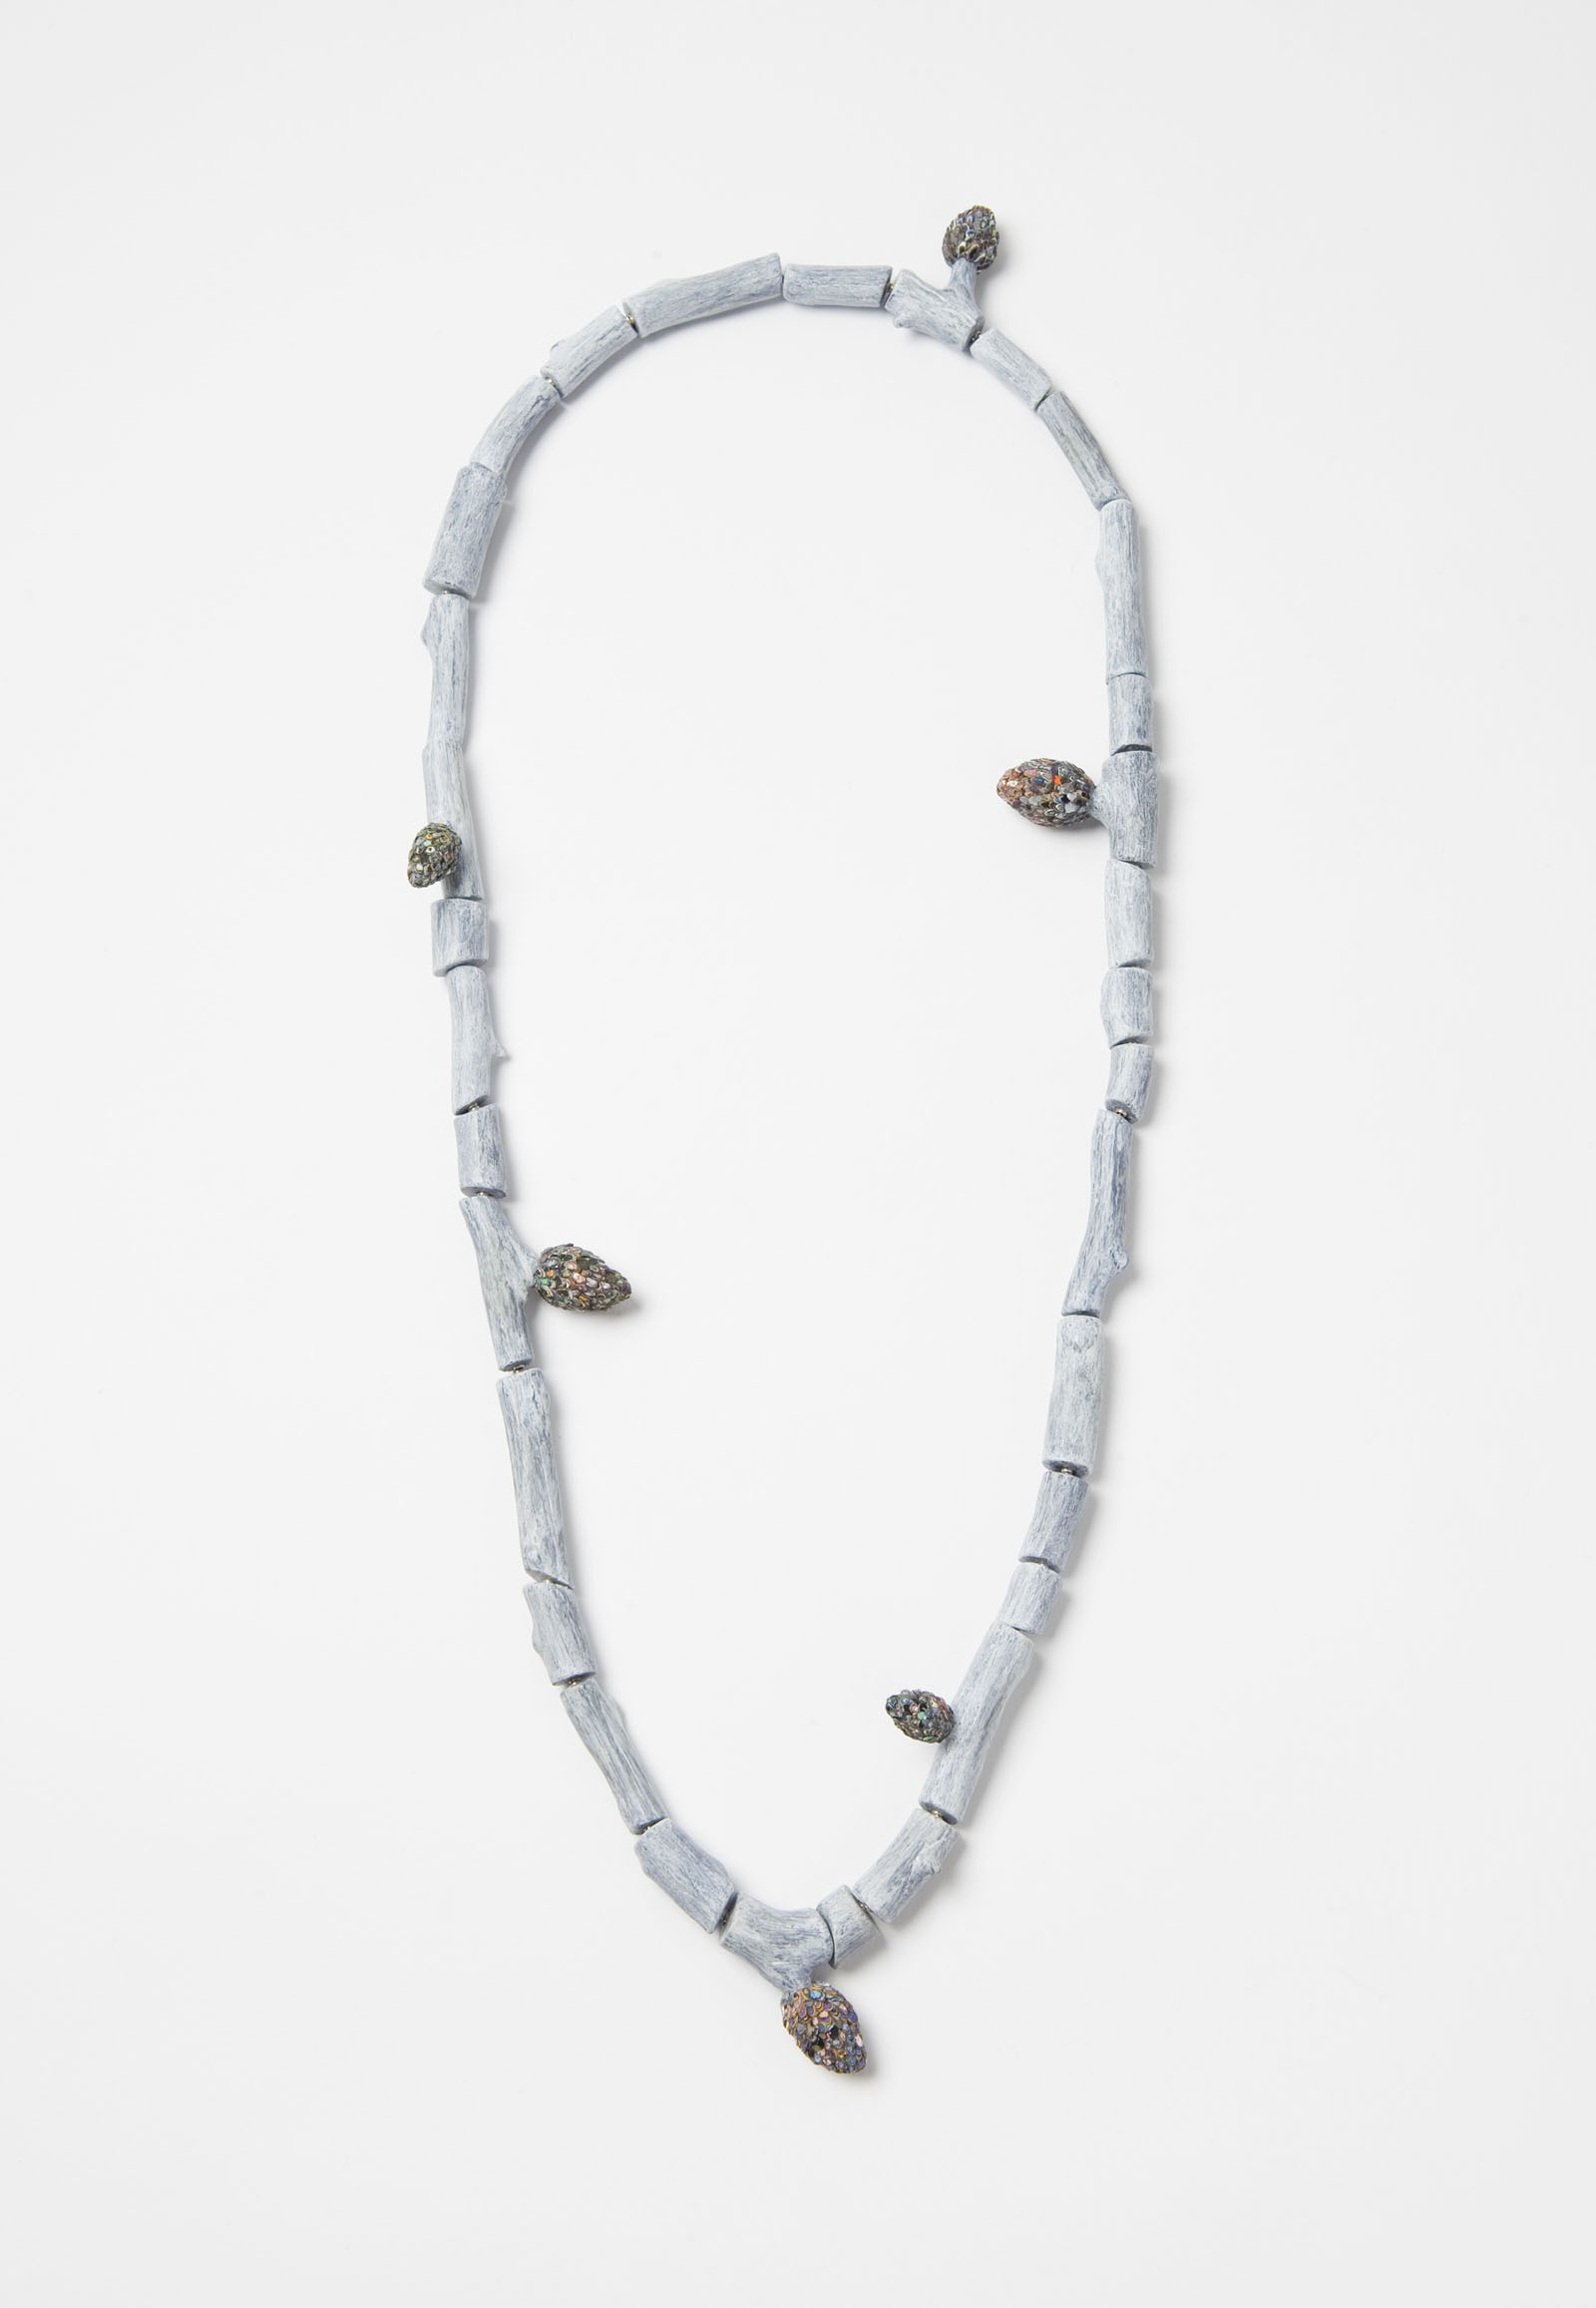 """Raduga Buds 1"" I Necklace, 2013 I Wood, graffiti, silver, steel wire, paint I Photo: Mirei Takeuchi"